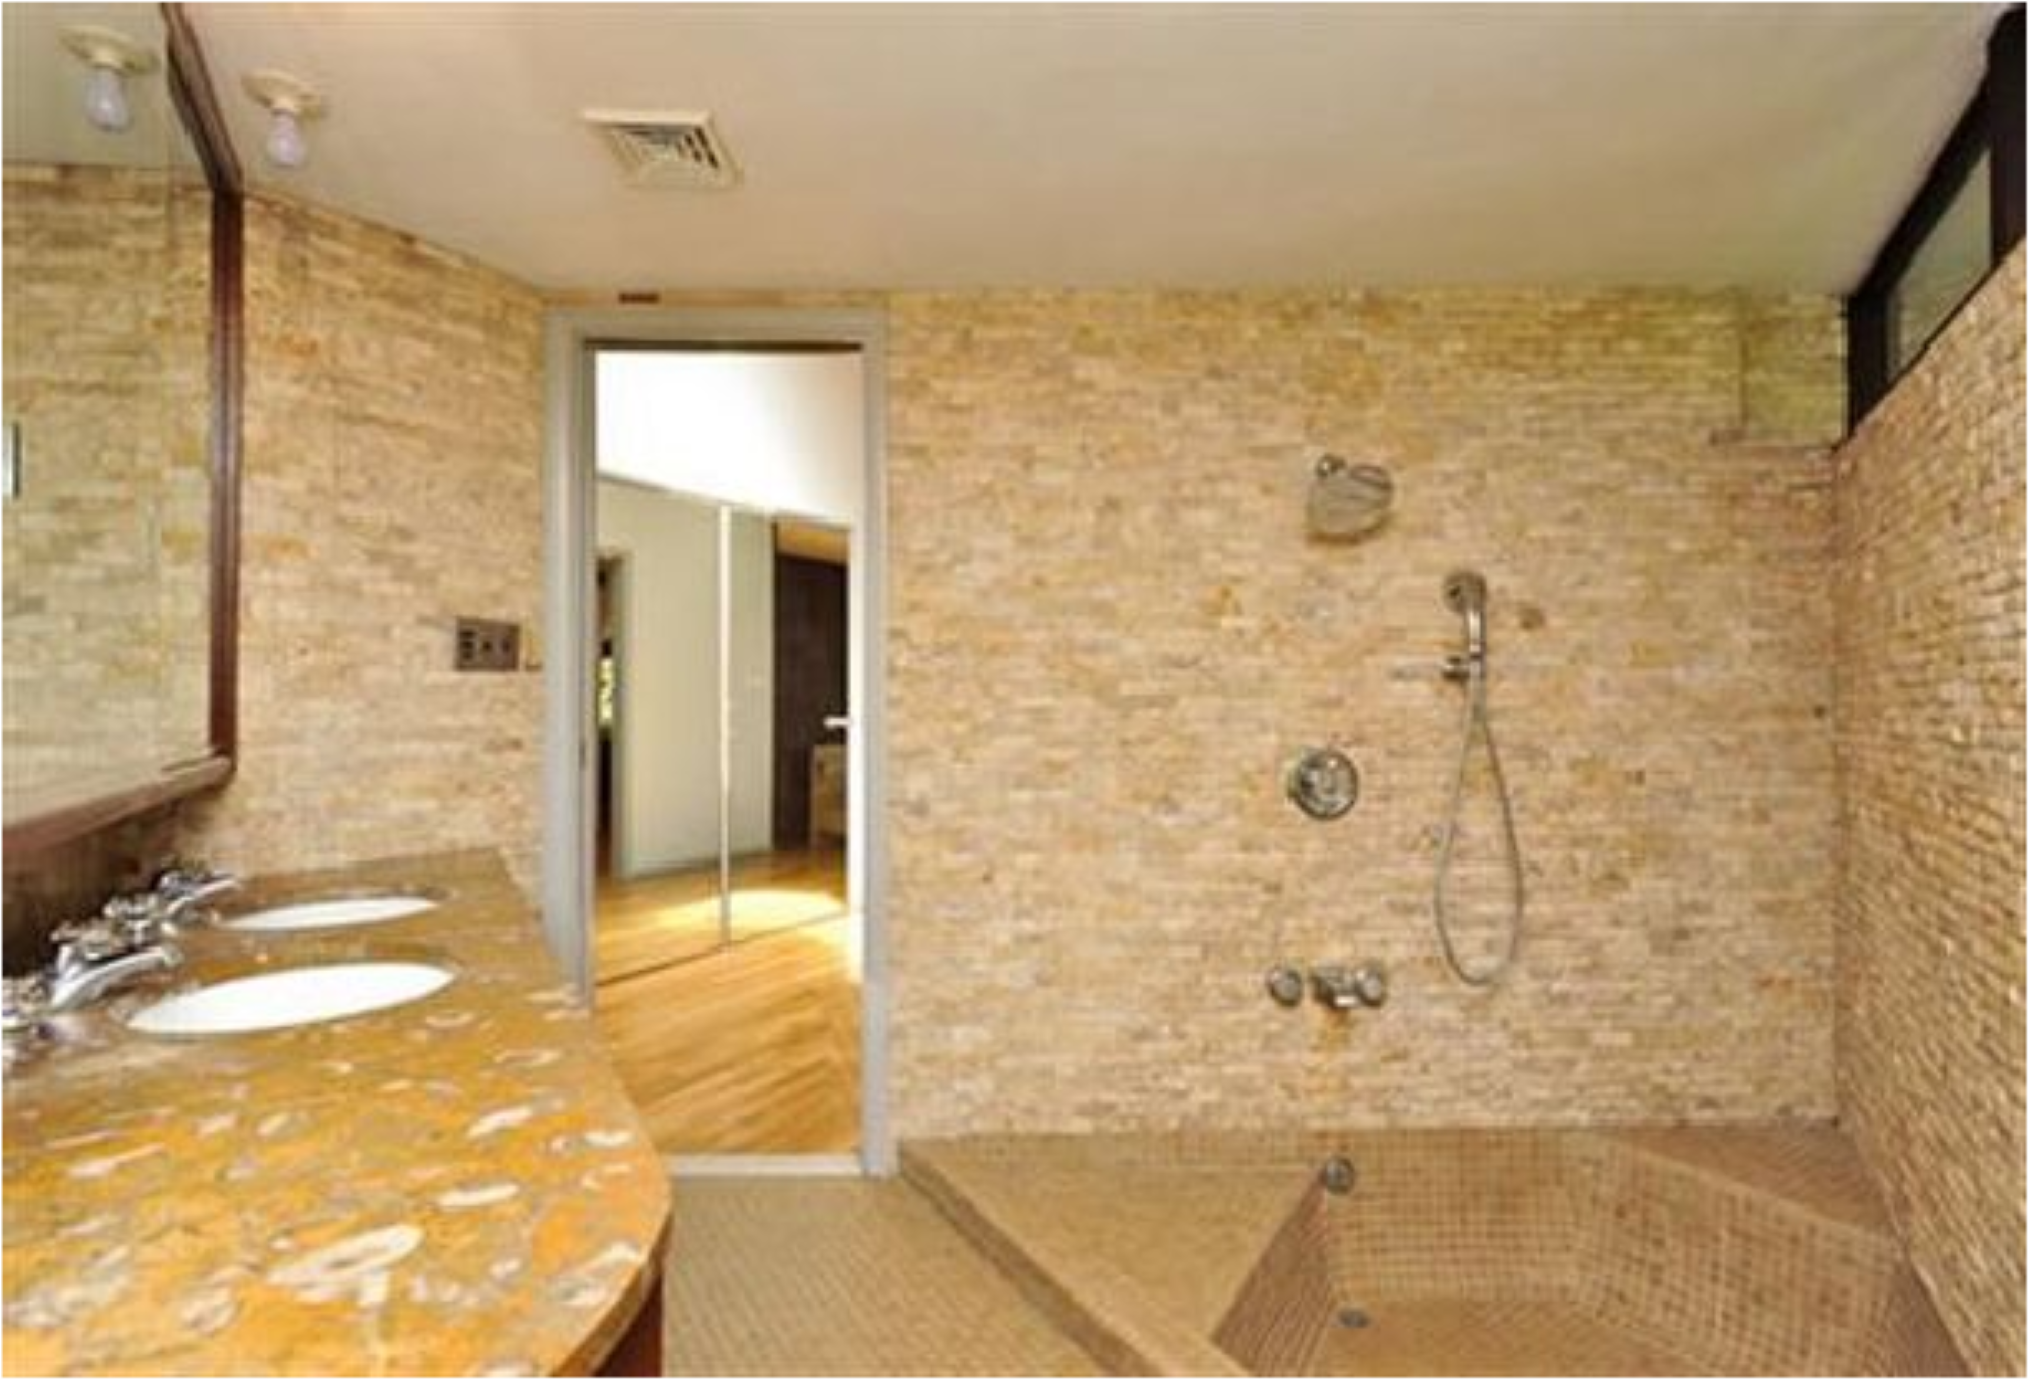 Spectacular Bathroom Design Tool As The Artistic Ideas The Inspiration Room To Renovation Bathroom You (View 12 of 29)